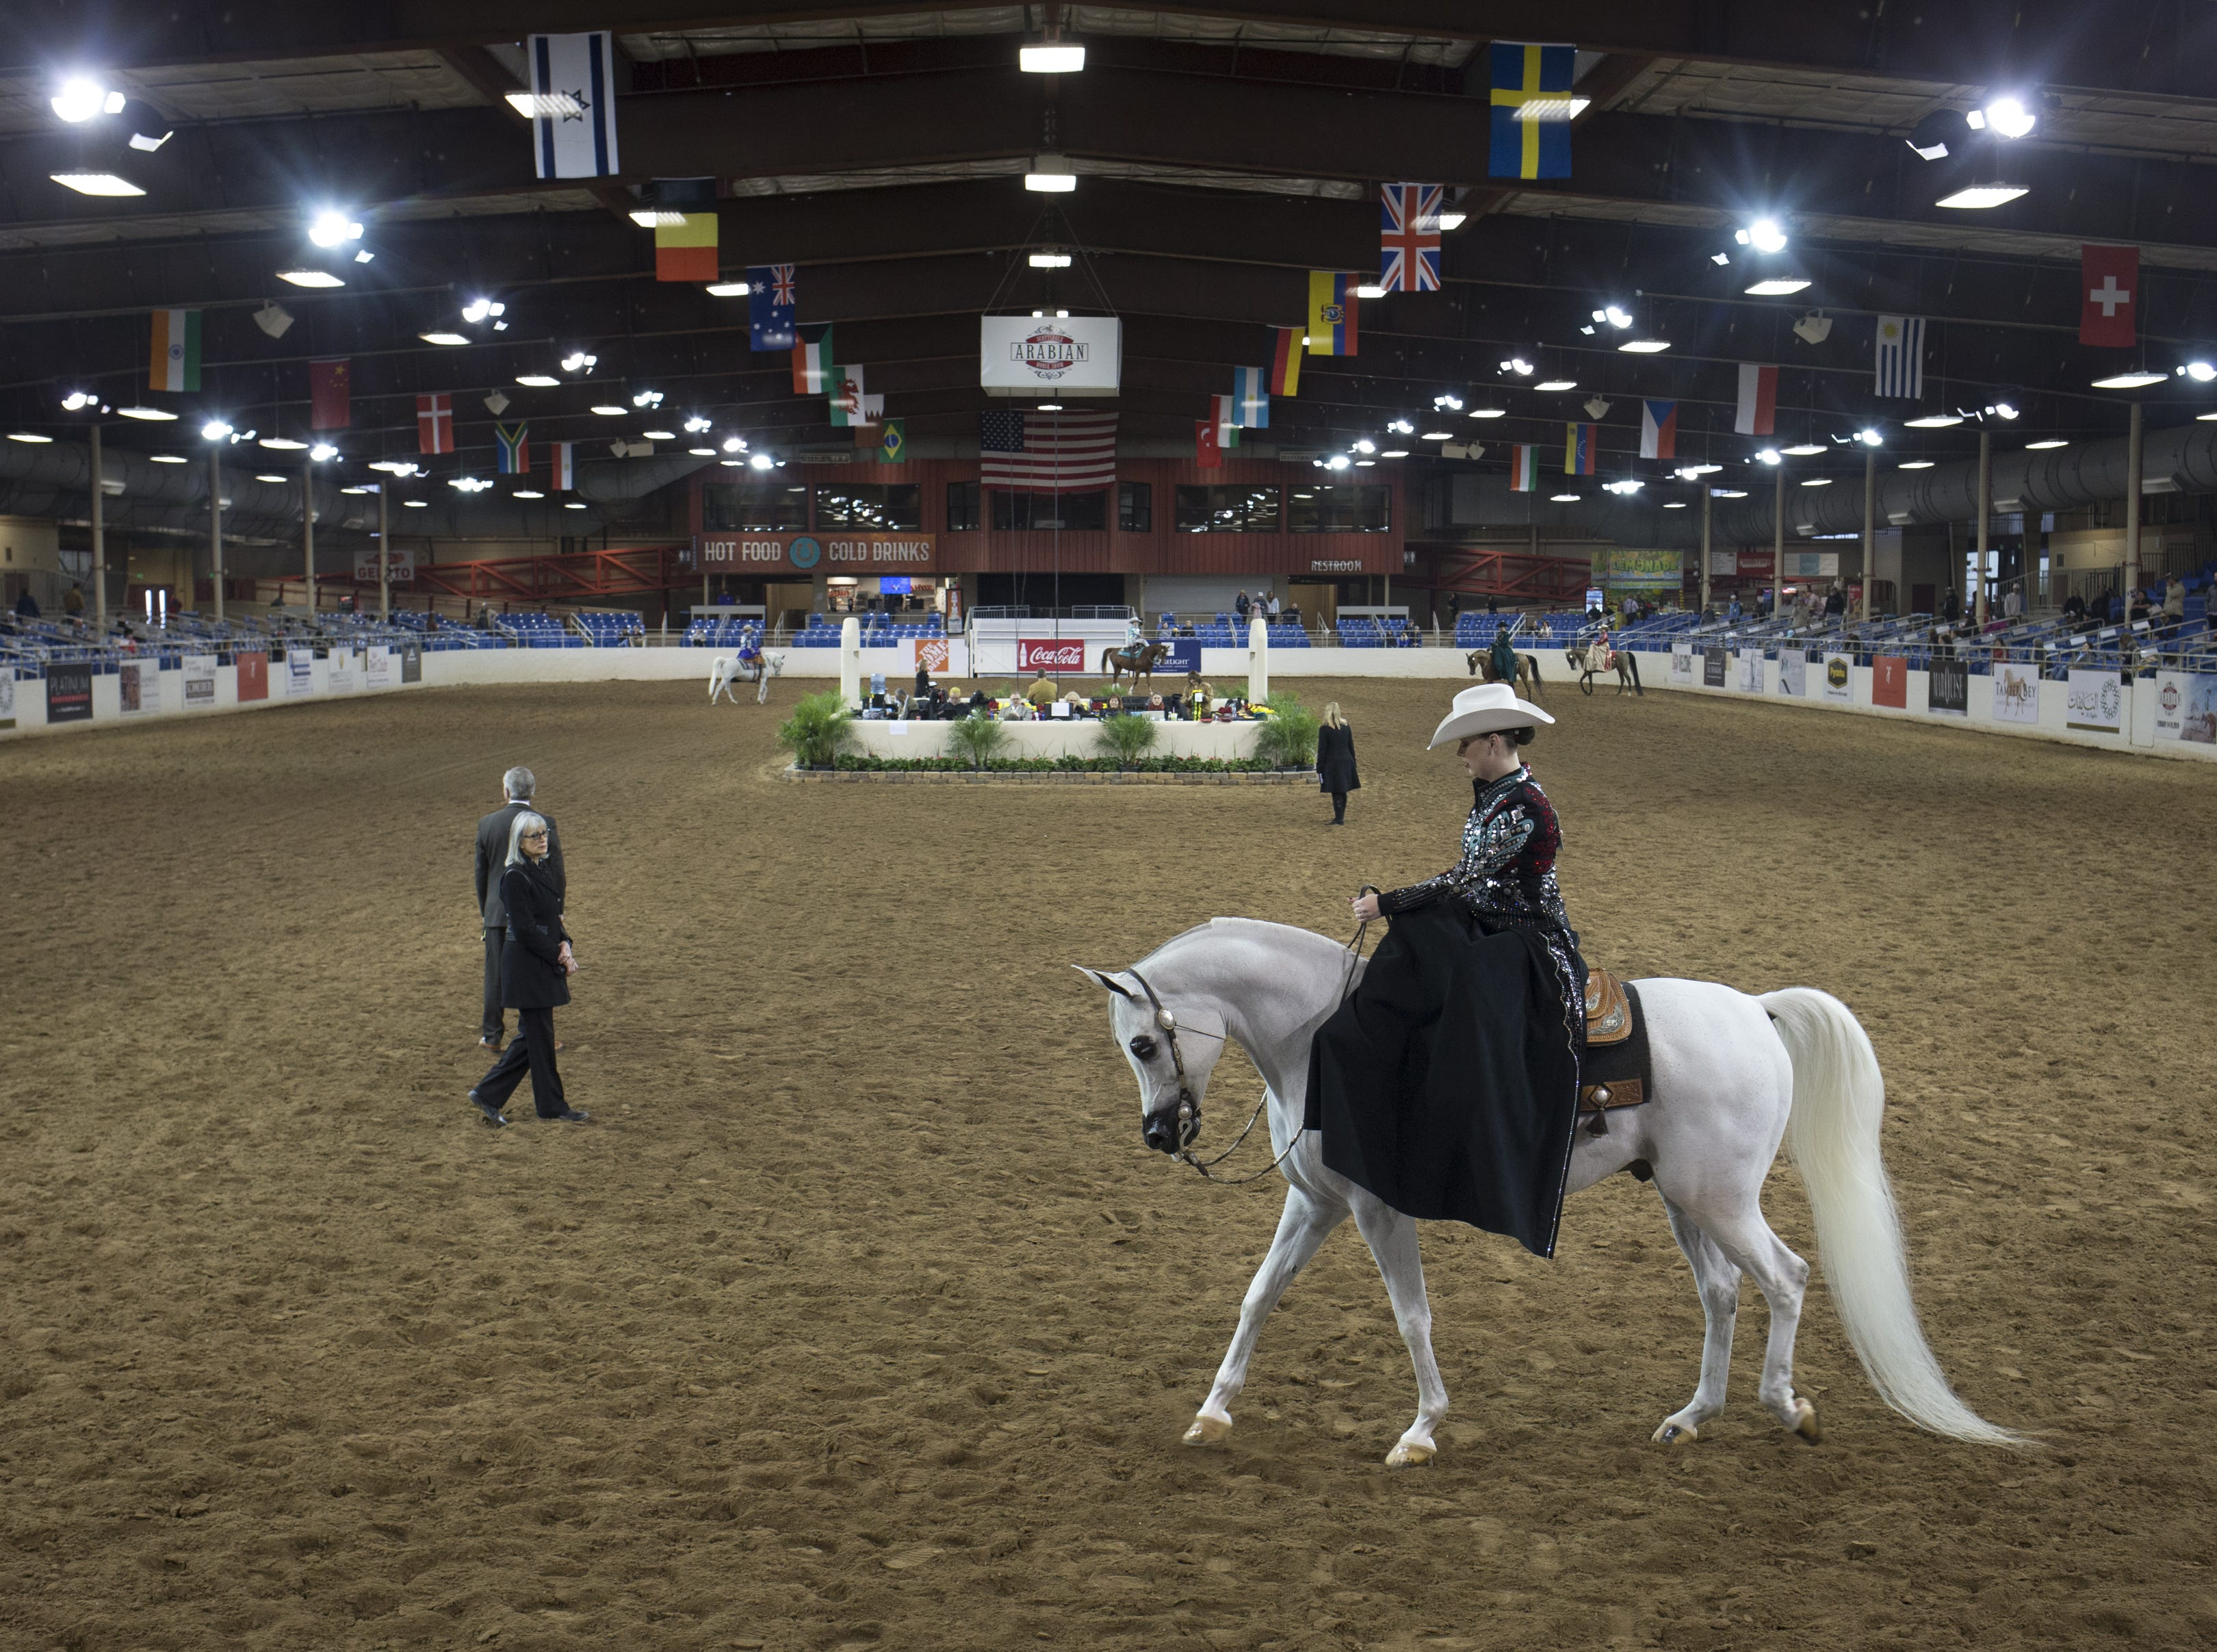 Rebecca Marr rides Verdykt in the Arabian Ladies Side Saddle Championship Western 18 & under category on Feb. 18, 2019, during the 64th Annual Scottsdale Arabian Horse Show at West World. Rebecca and Verdykt took first place.